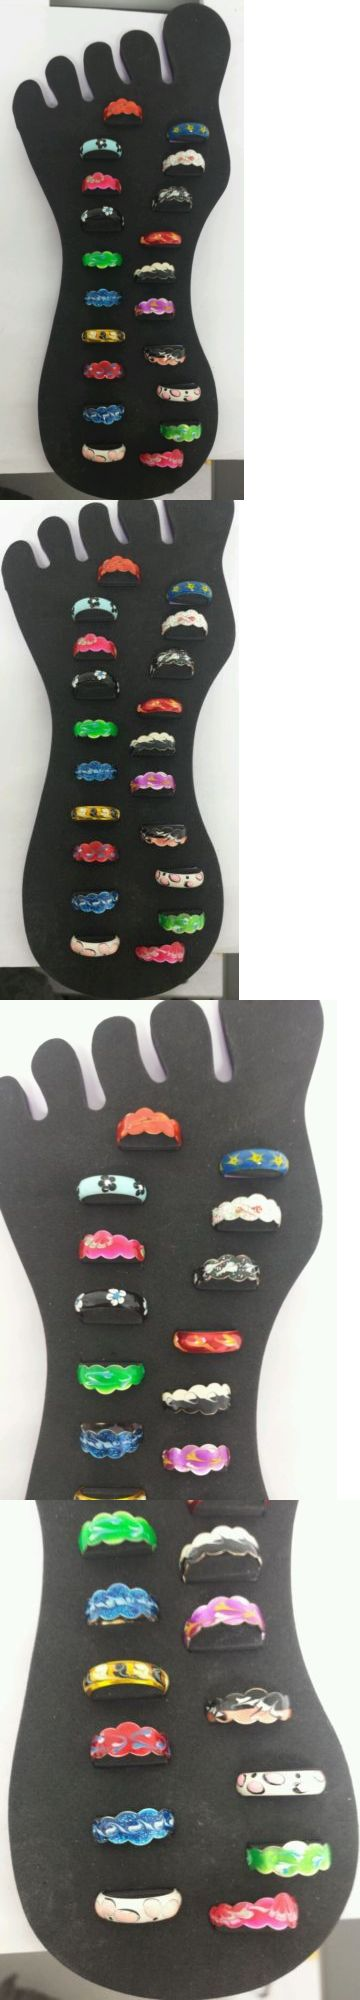 Other Wholesale Body Jewelry 51011: 925 Sterling Silver Hand Painted Toe Ring Adjustable Wholesale 20 Pcs Lot BUY IT NOW ONLY: $58.0